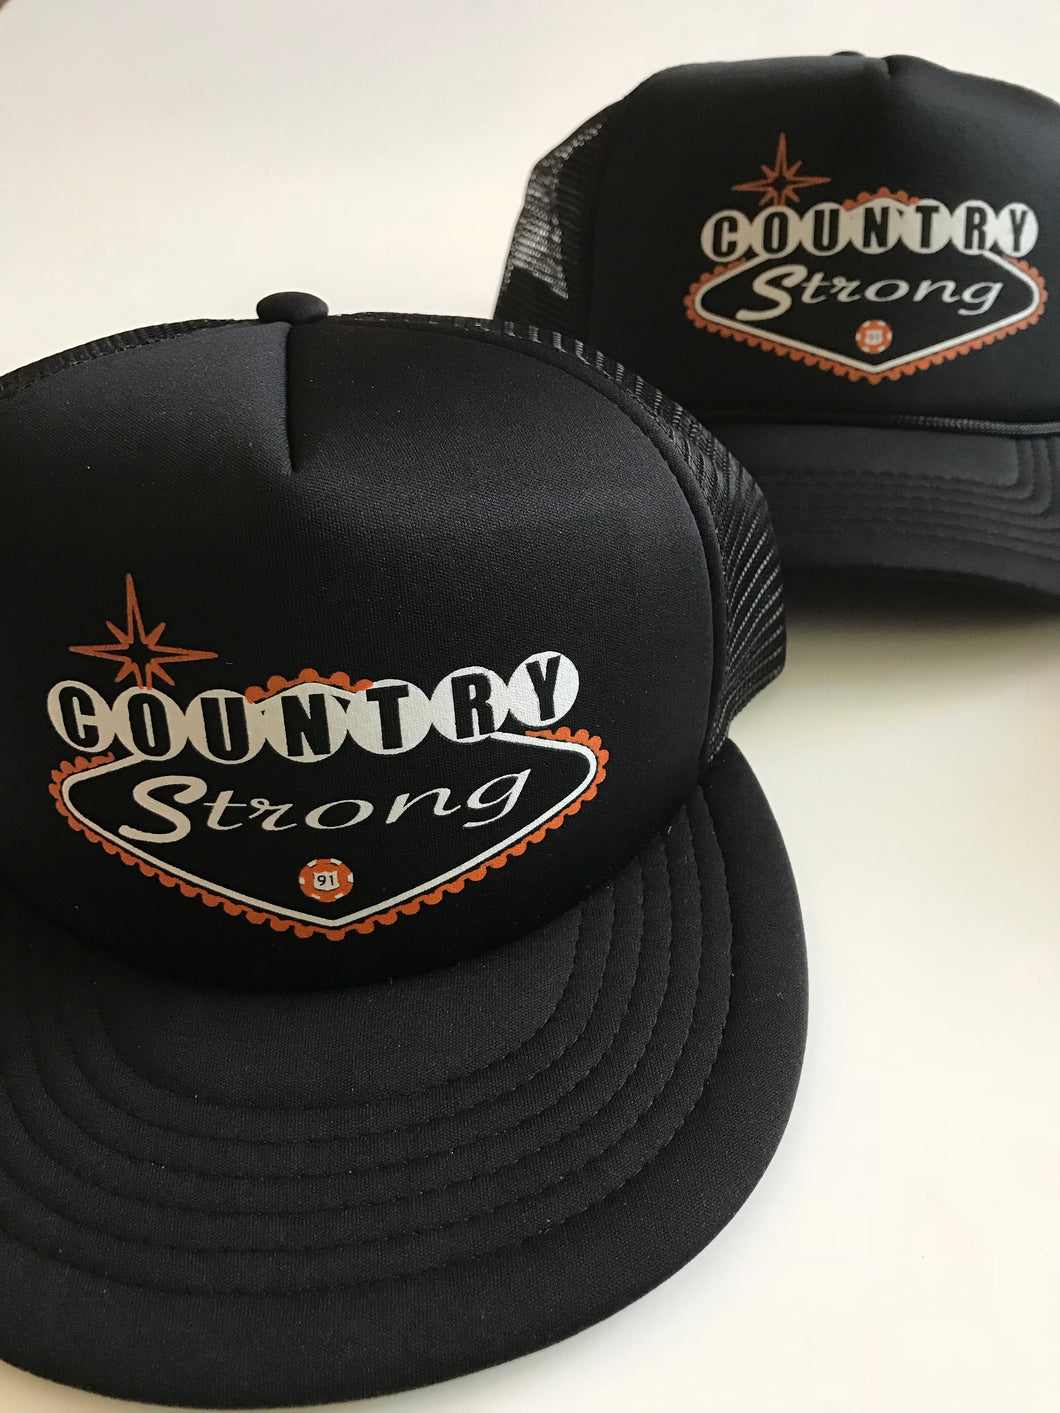 COUNTRY STRONG RT 91 HAT - Trailsclothing.com